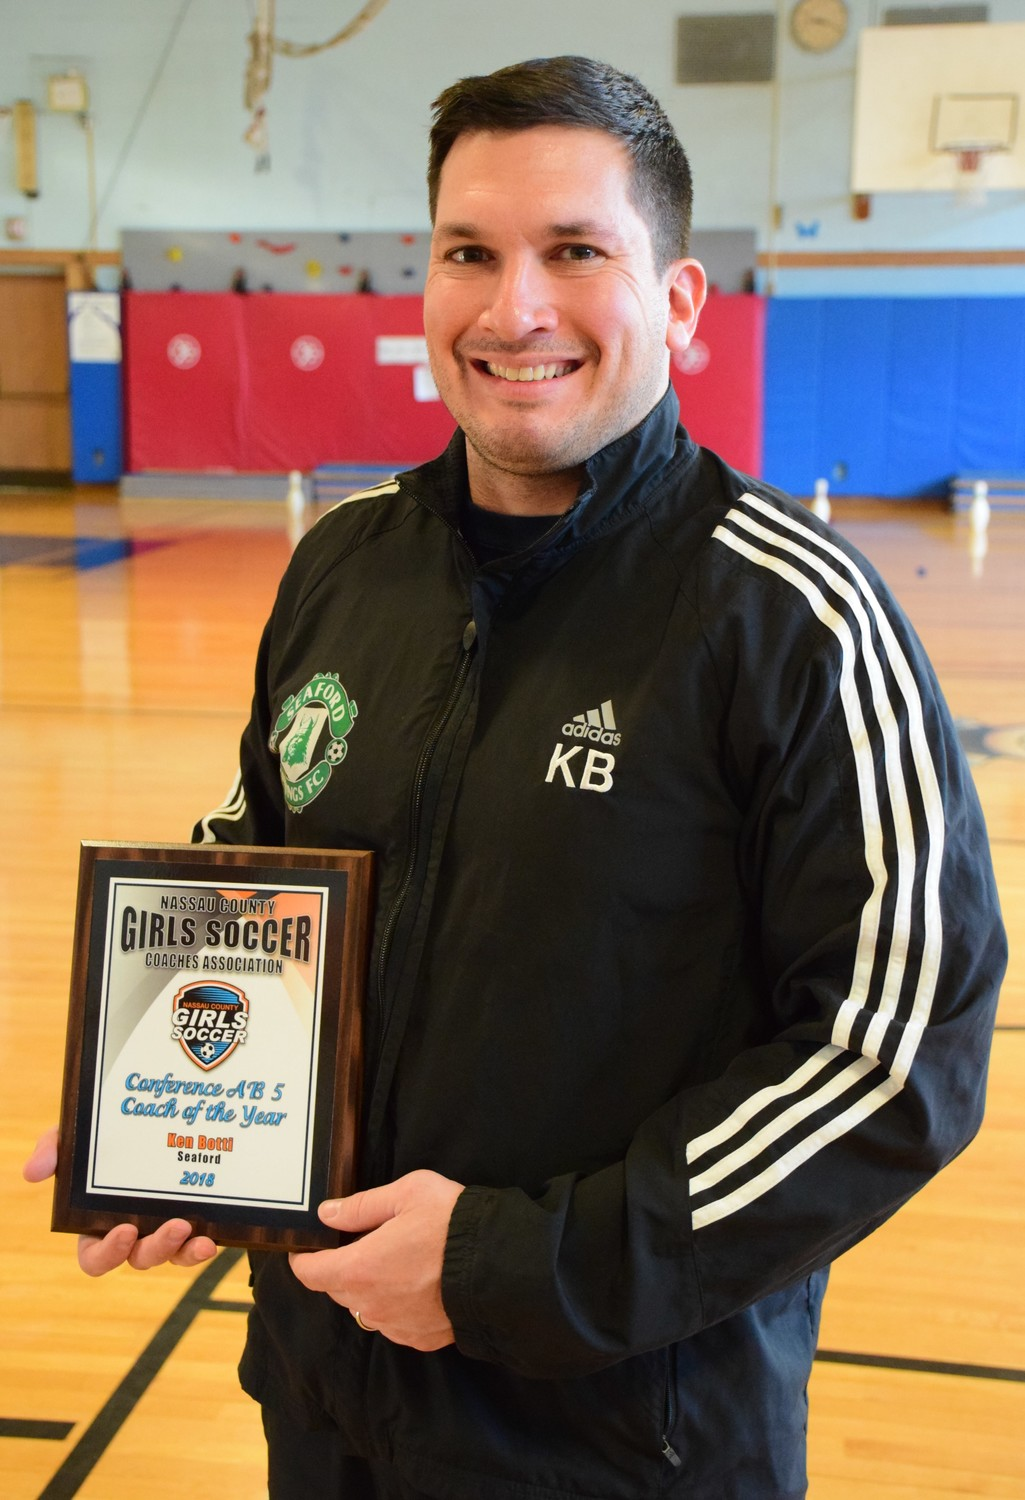 Seaford's Ken Botti was named Coach of the Year by his AB5 conference peers.